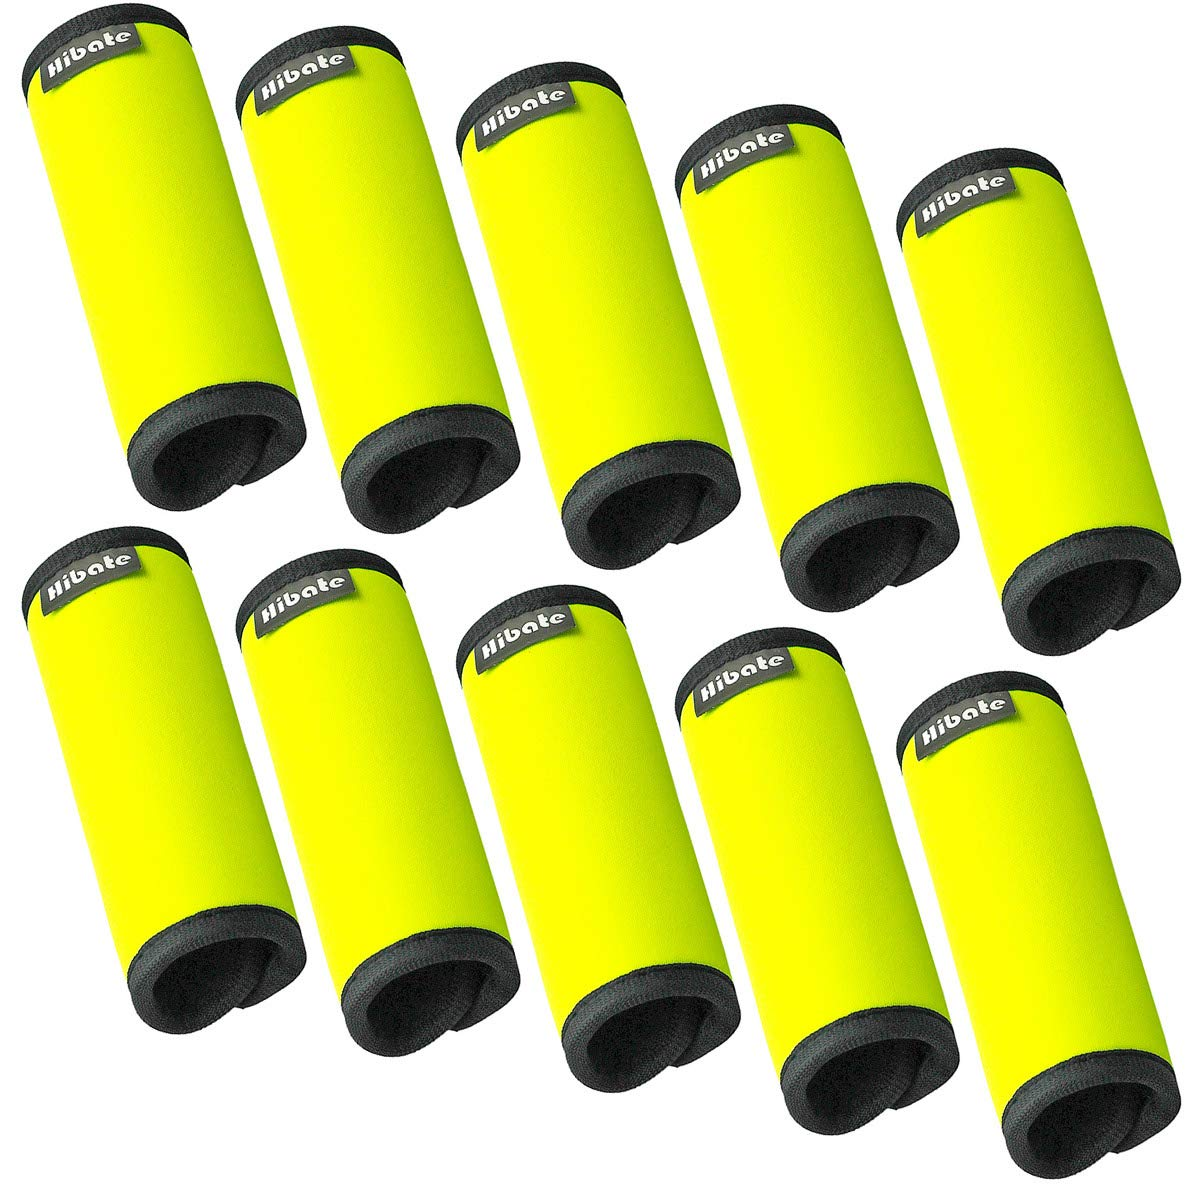 Hibate Comfort Neoprene Luggage Handle Wrap Grip Tags - Fluorescent Yellow, Pack of 10